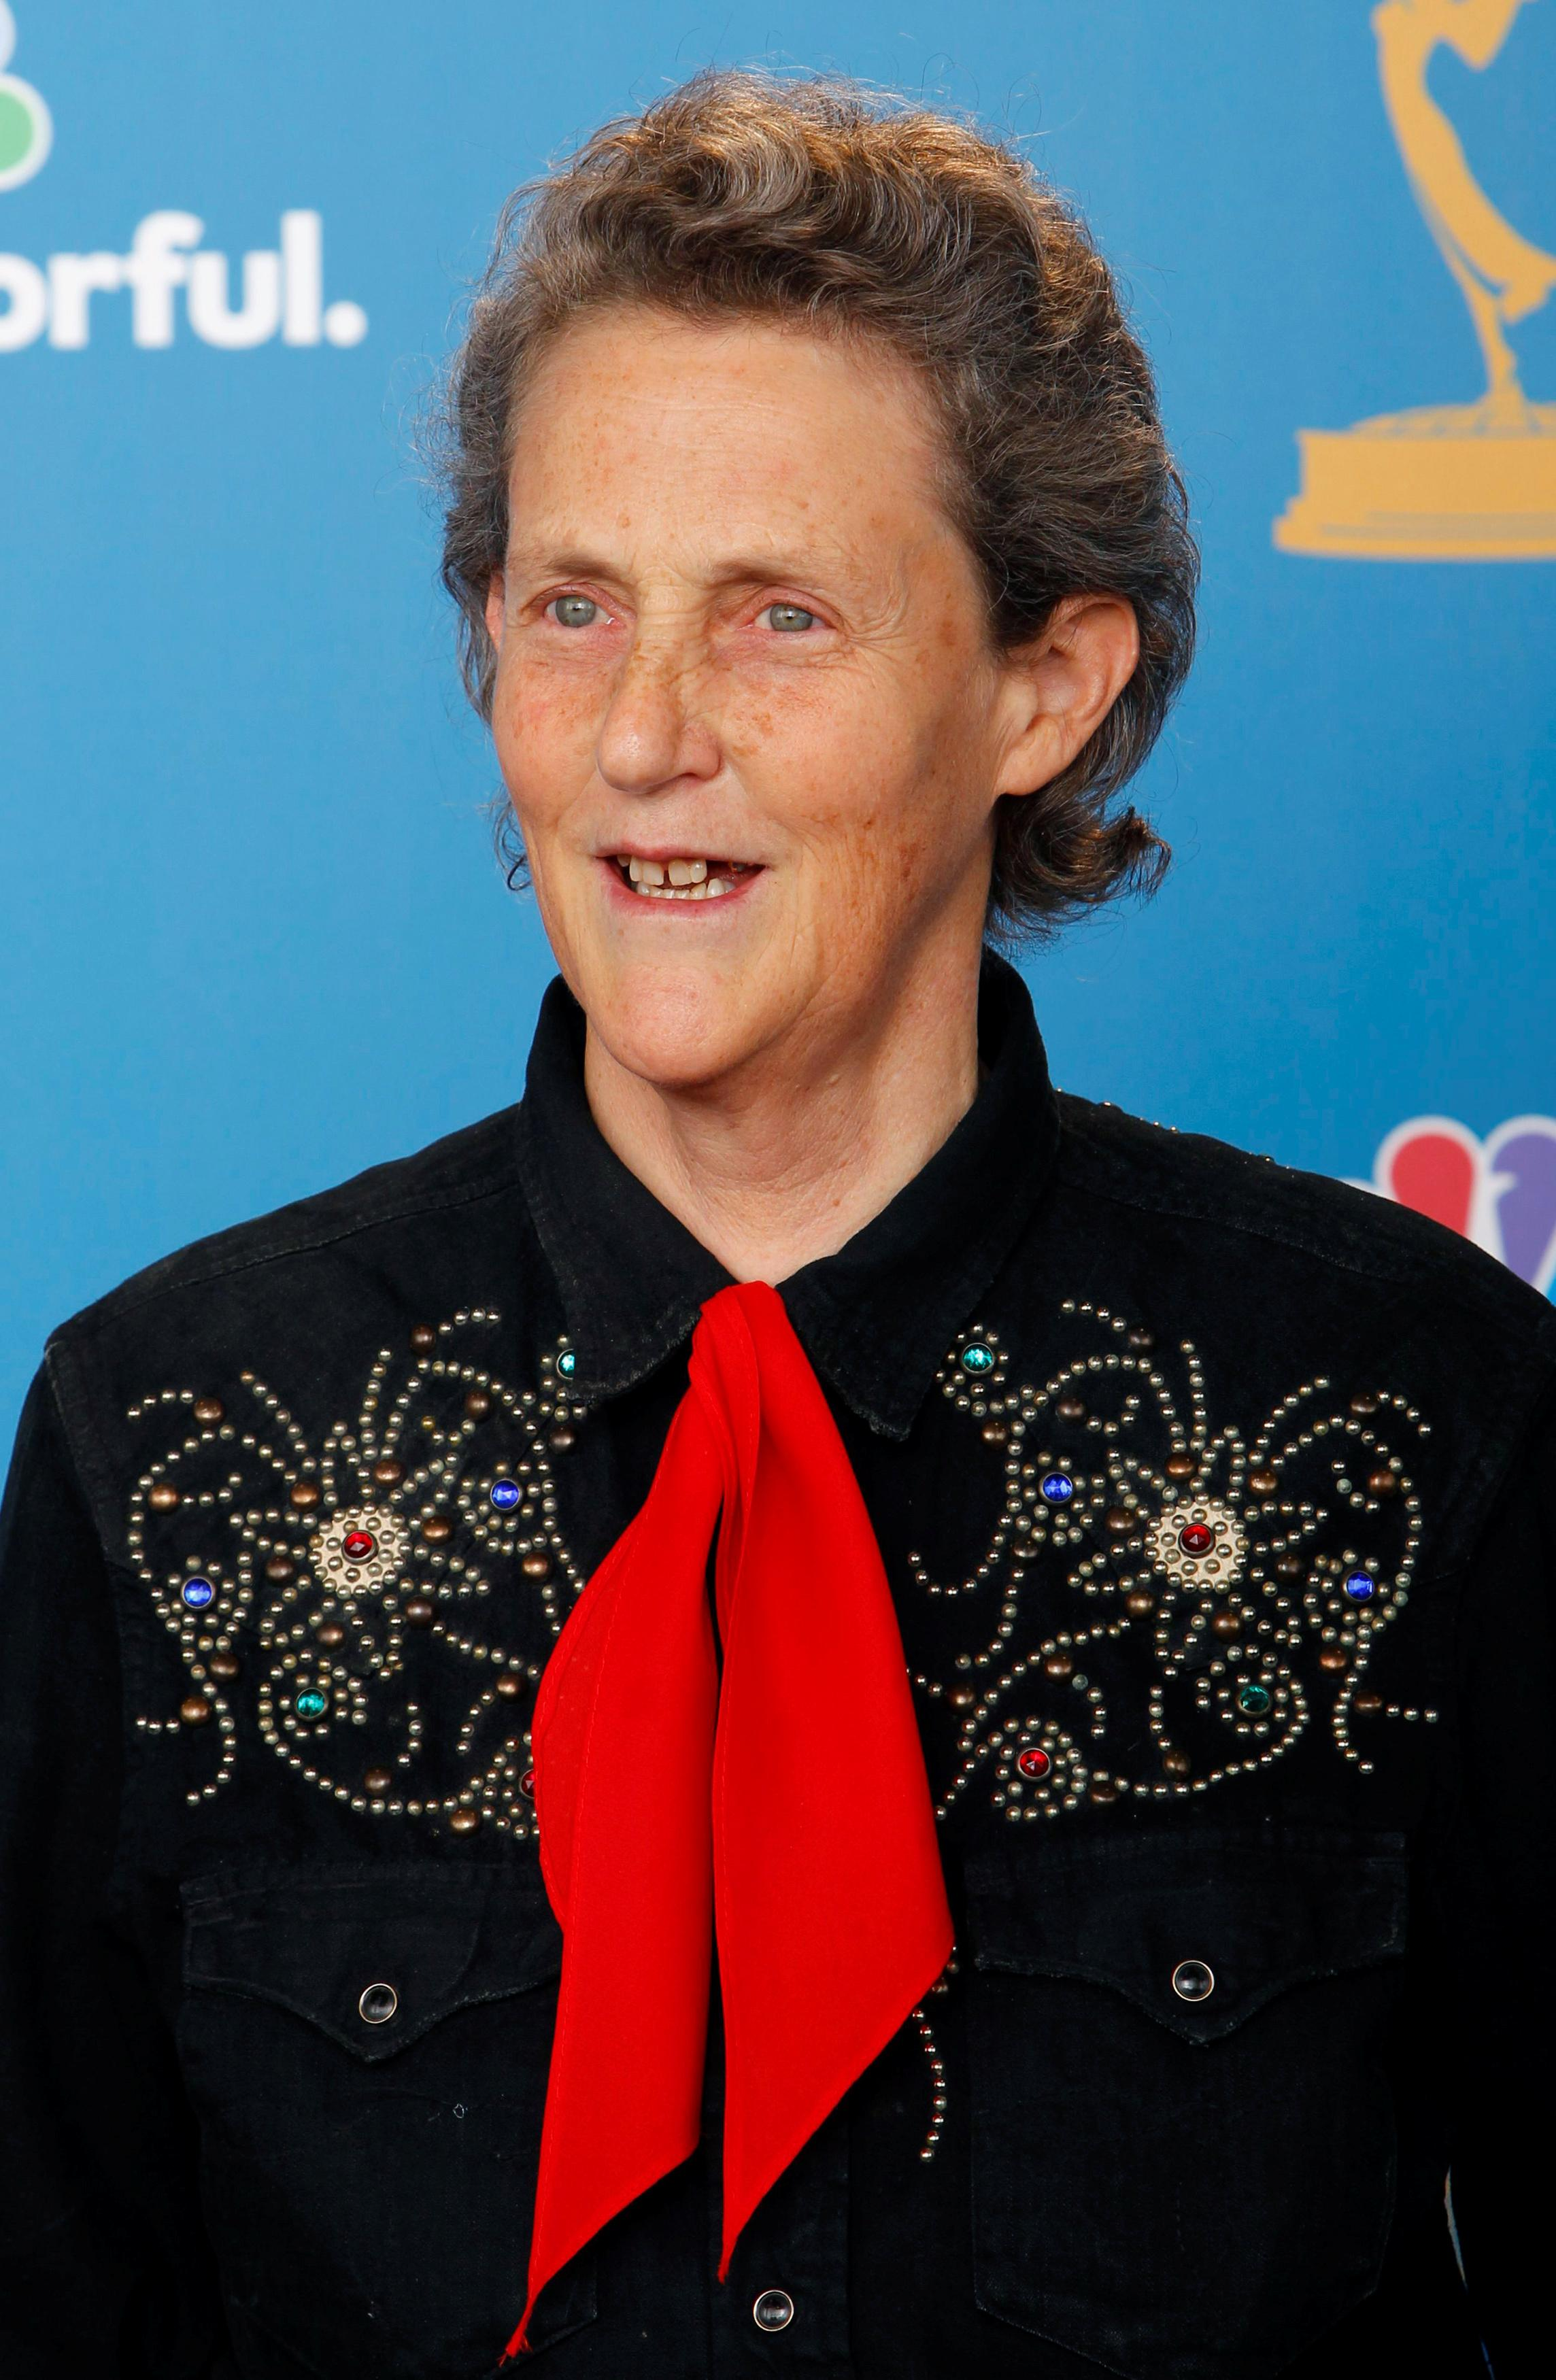 Different minds: Temple Grandin on nurturing autistic workers